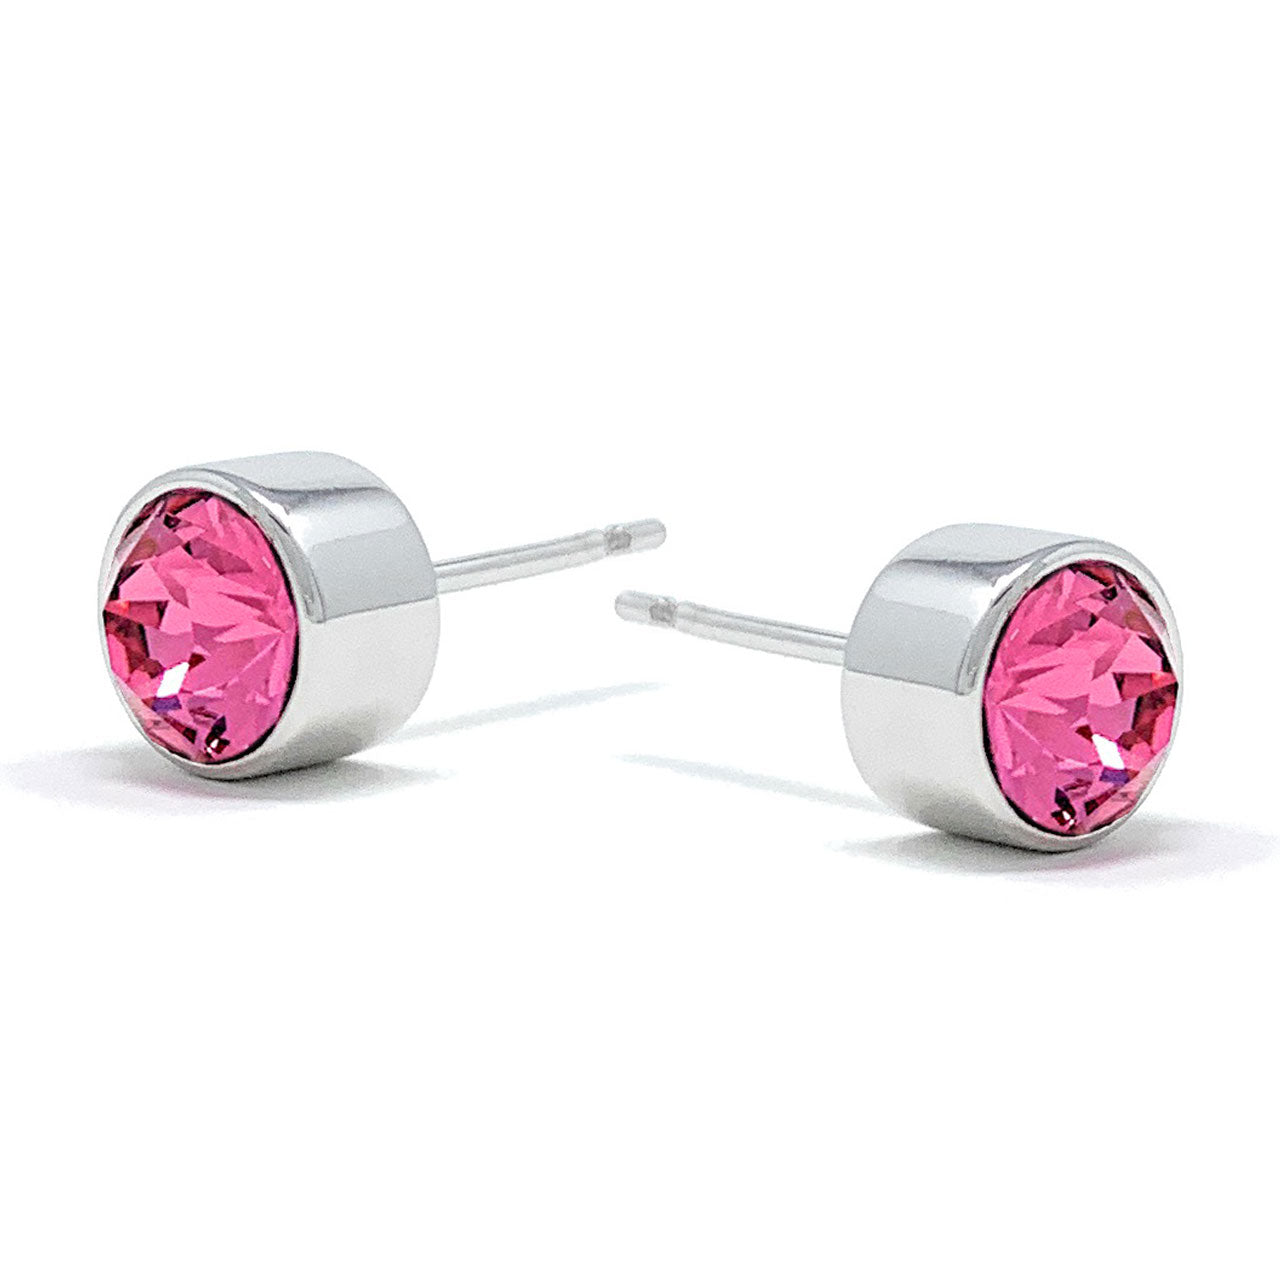 Harley Small Stud Earrings with Pink Rose Round Crystals from Swarovski Silver Toned Rhodium Plated - Ed Heart